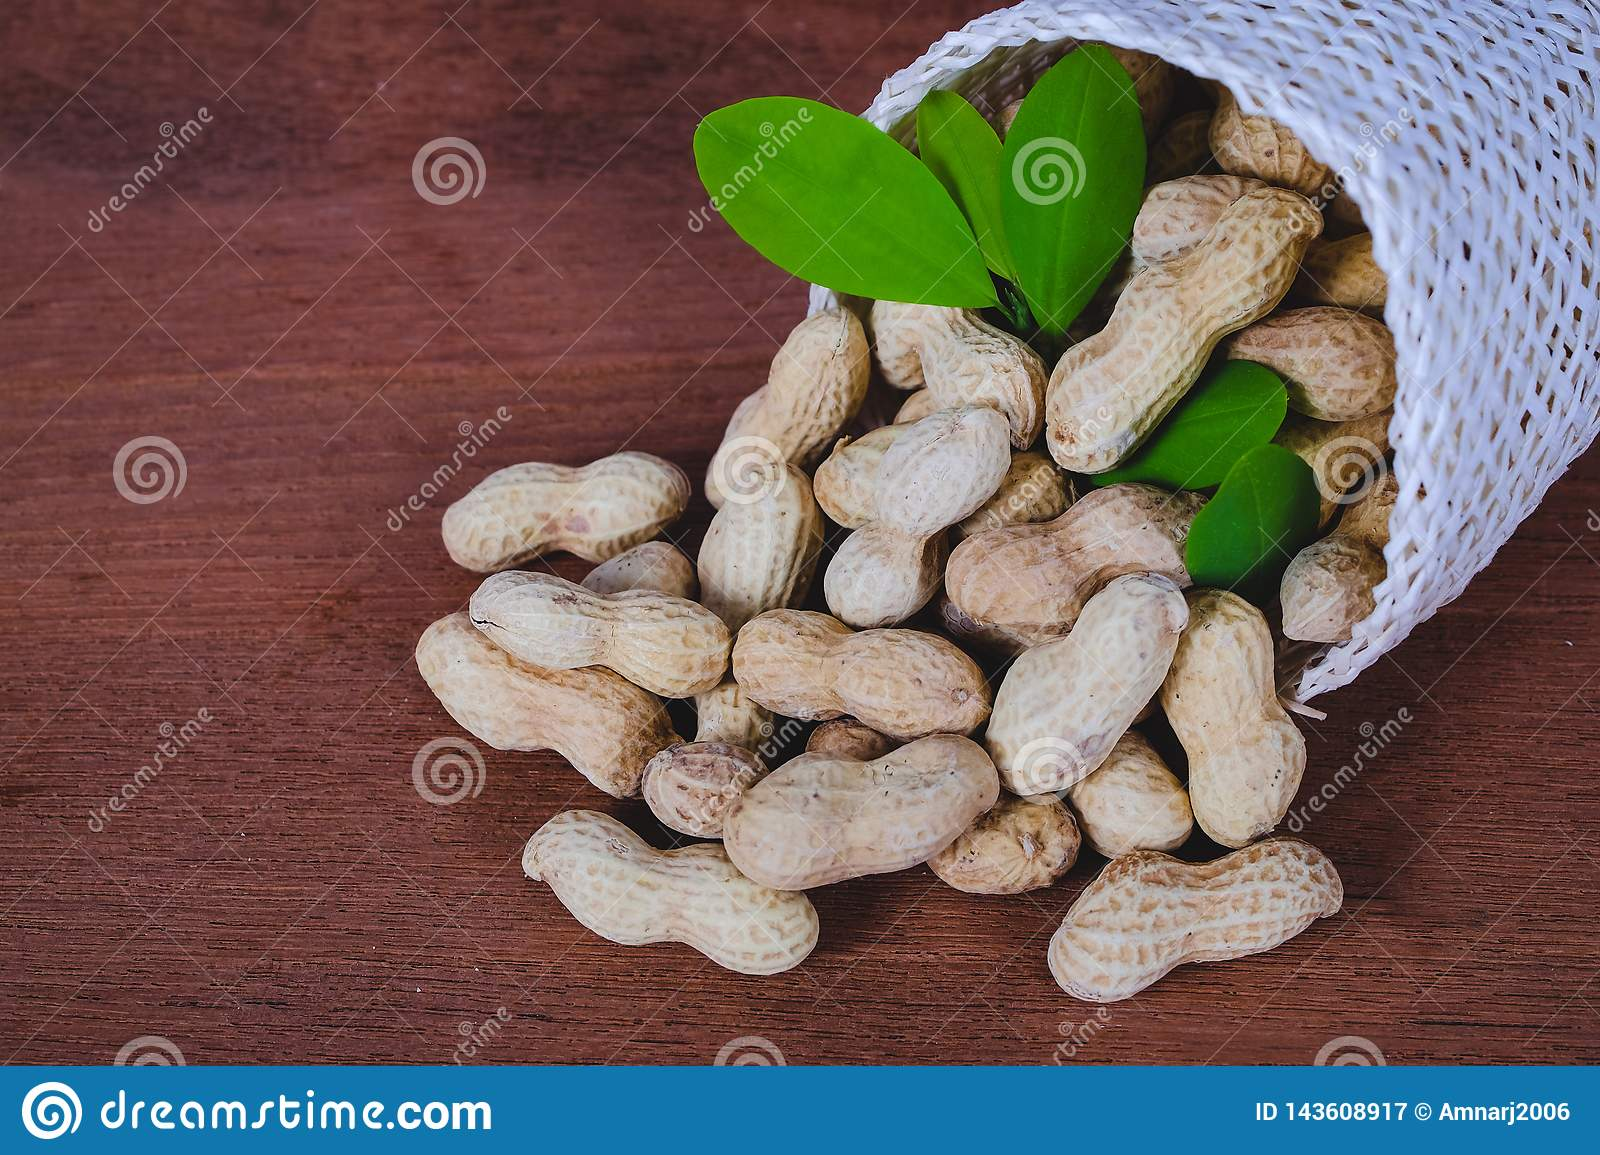 Peanut spill out of basket on wood